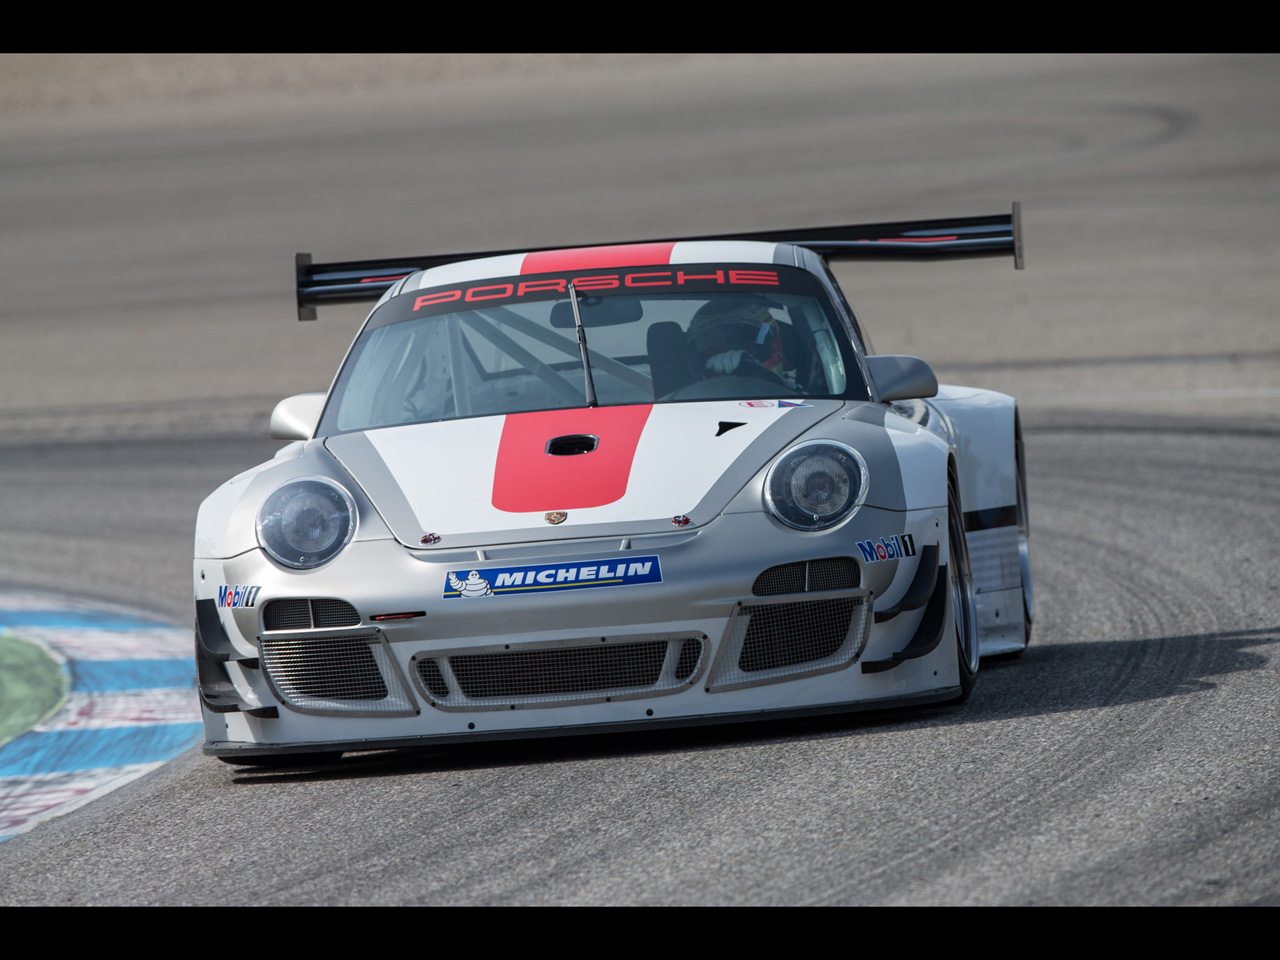 2013 Porsche 911 GT3 R   Motion 1   1280x960   Wallpaper 1280x960